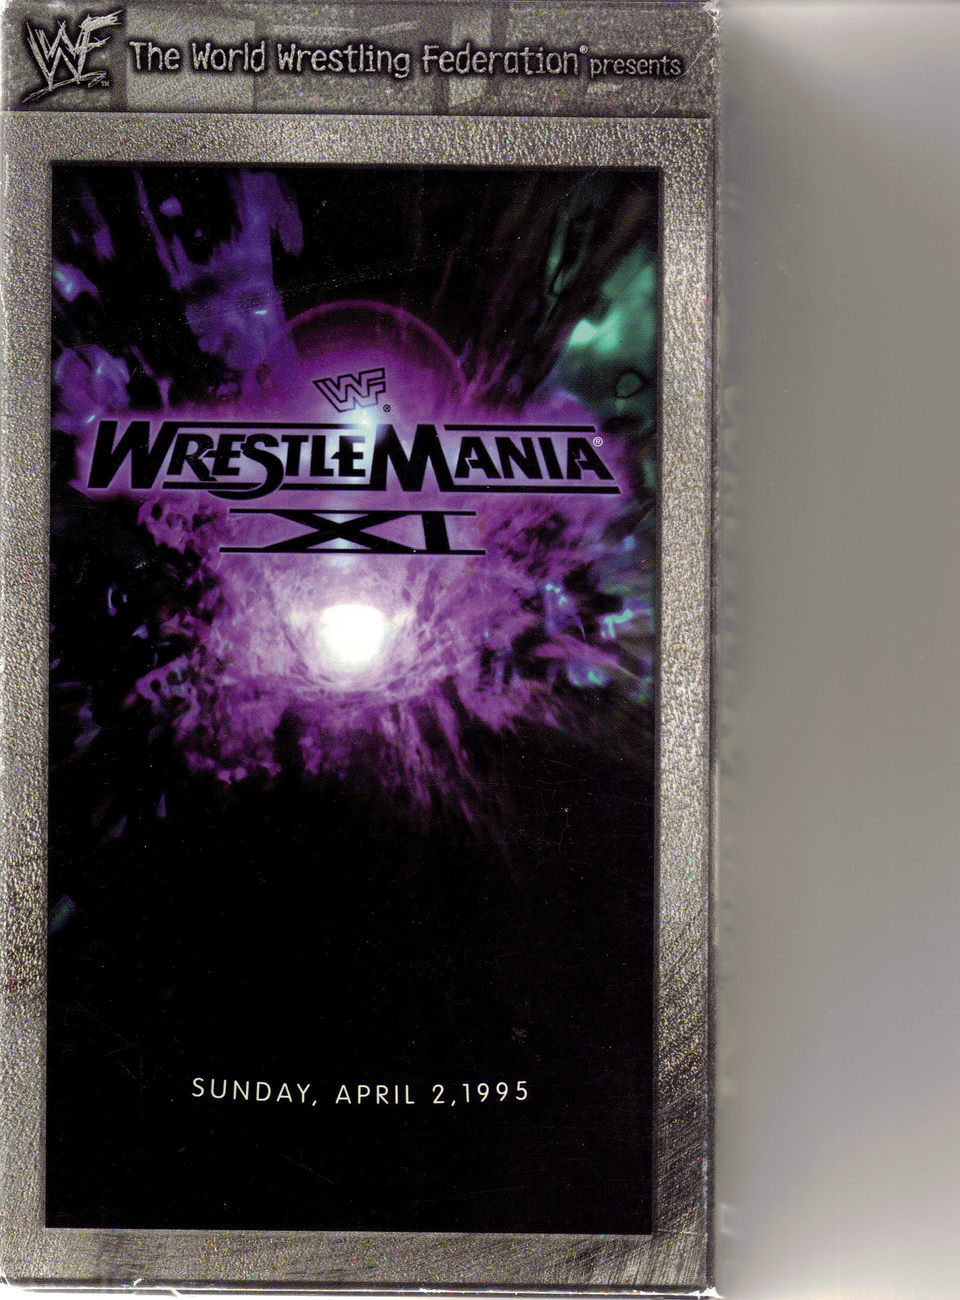 Wrestle mania xi